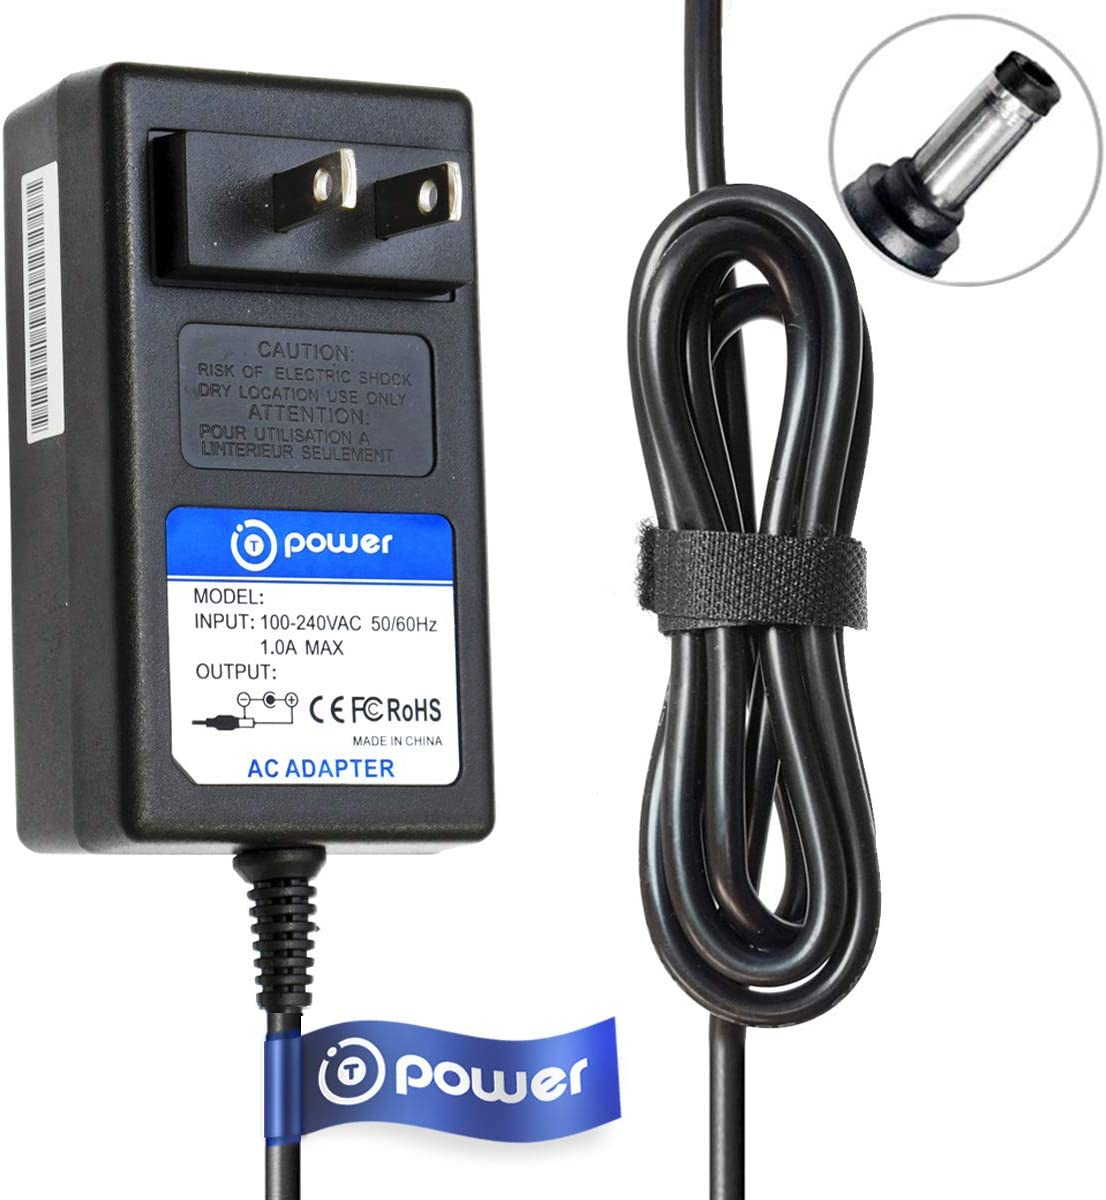 T-Power Ac Dc Adapter Charger Compatible with Williams Allegro 88-Key Piano & Yamaha Digital Piano Midi Keyboard Series: YPG, YDP, YPP, YPR, YPT, CP, DGX, DJX, DSR, DX, EZ, NP Power Suppl;y